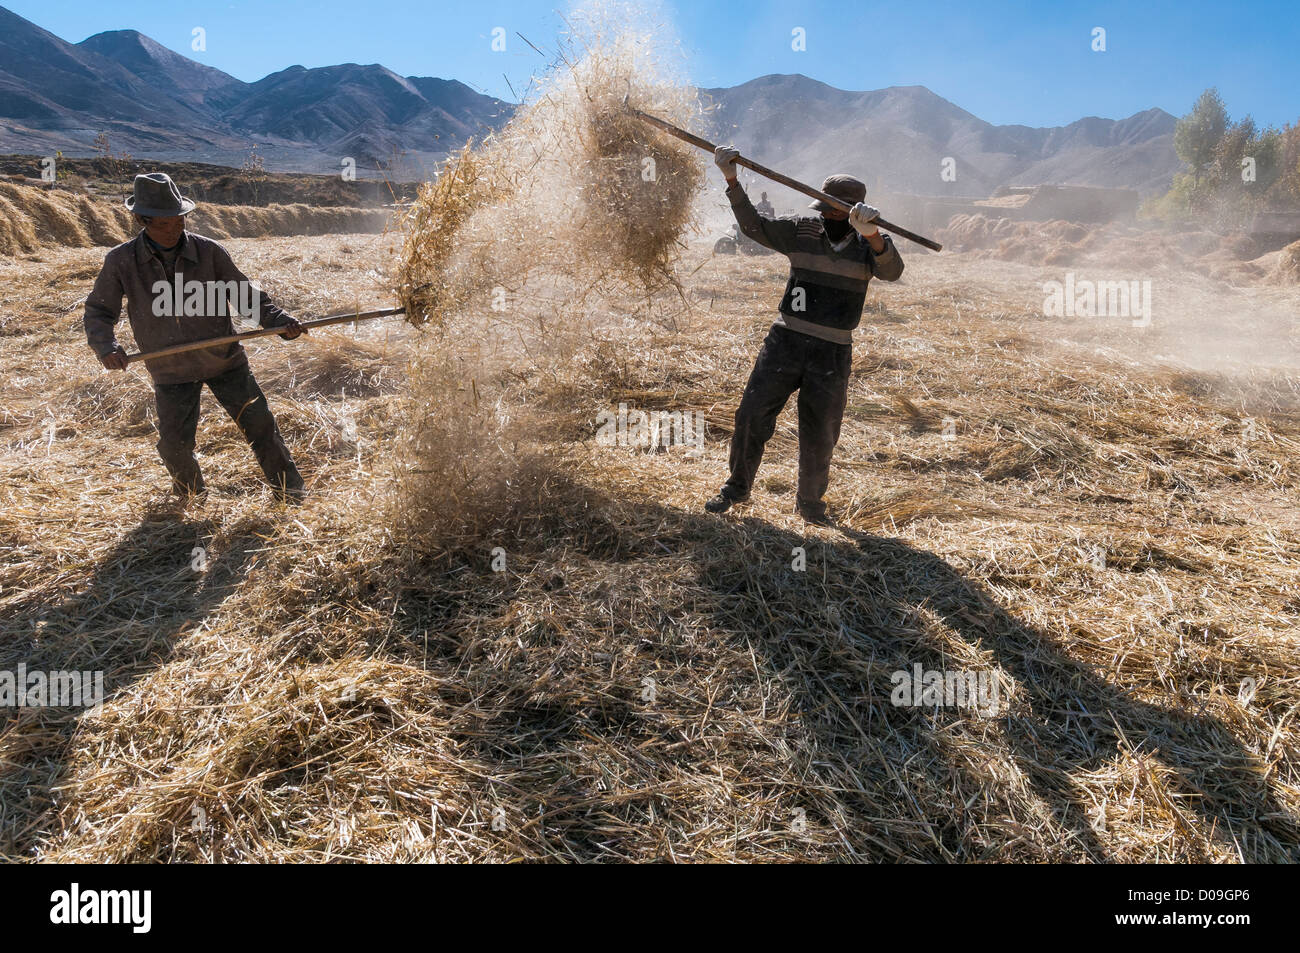 On outskirts of Lhasa, men thresh grain after Fall harvest, Tibet, China - Stock Image